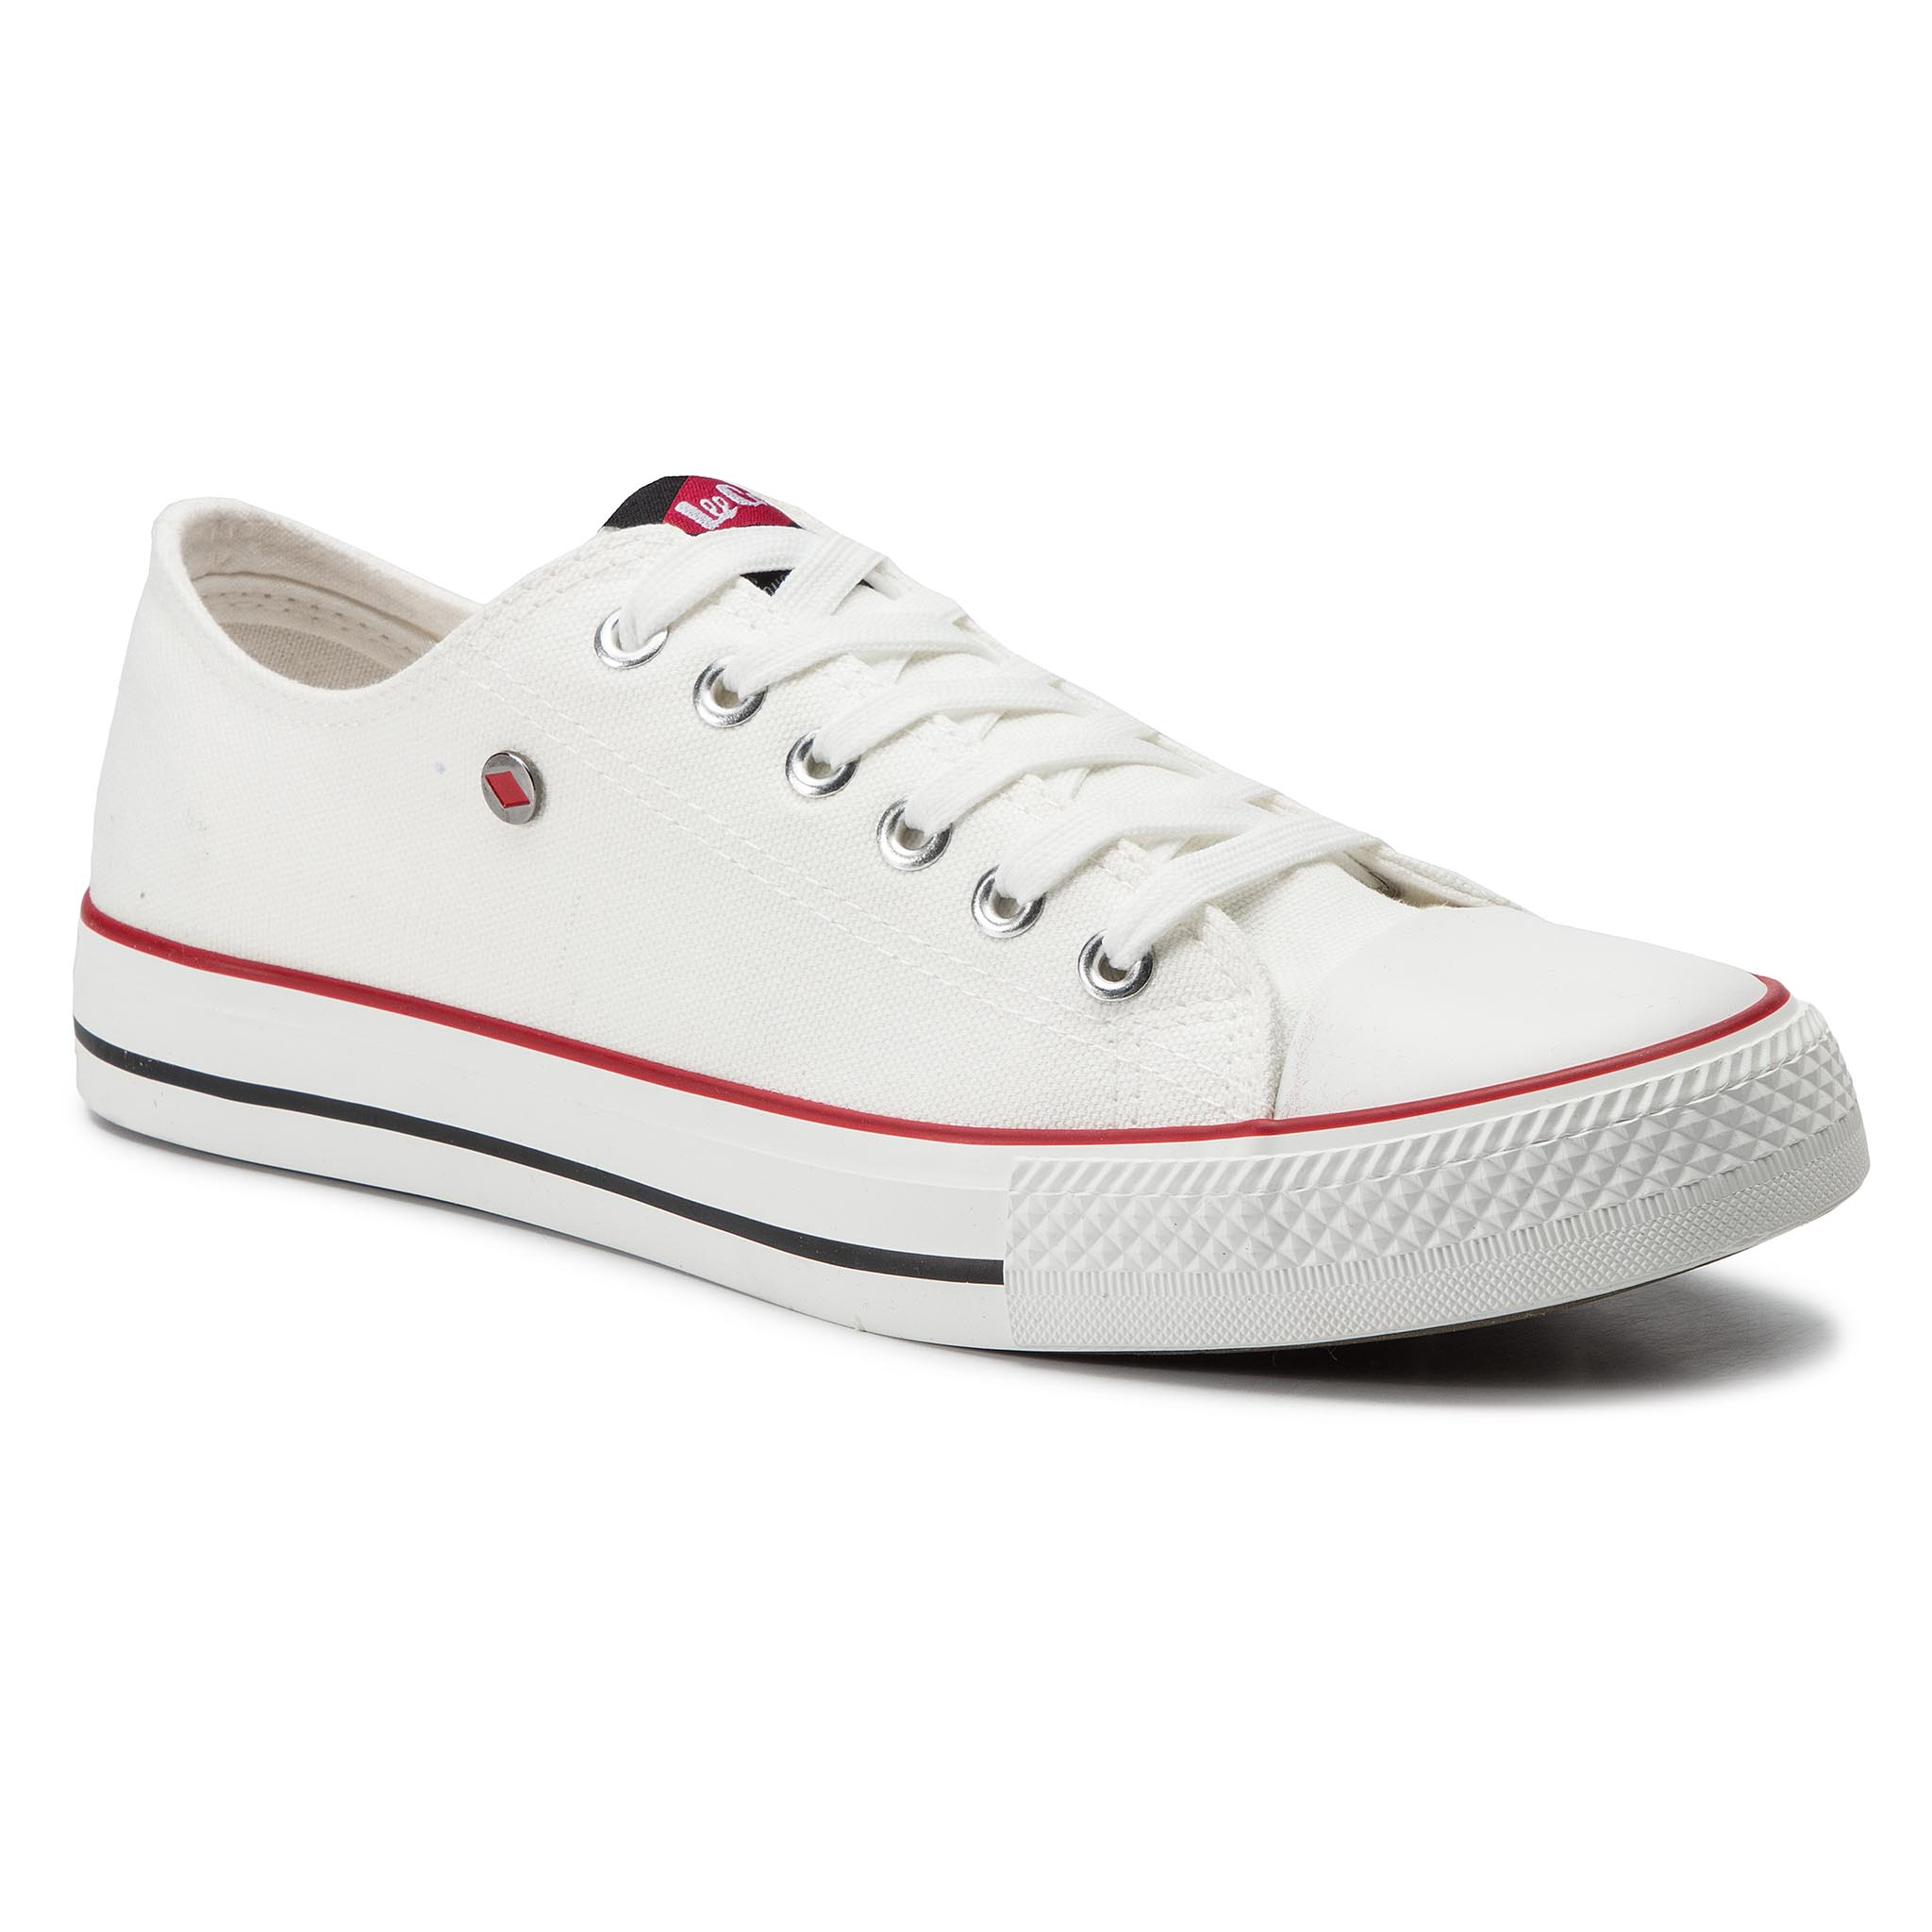 Lee Cooper Sneakers LEE COOPER - Low Cut 3-A LCW-19-530-011 White